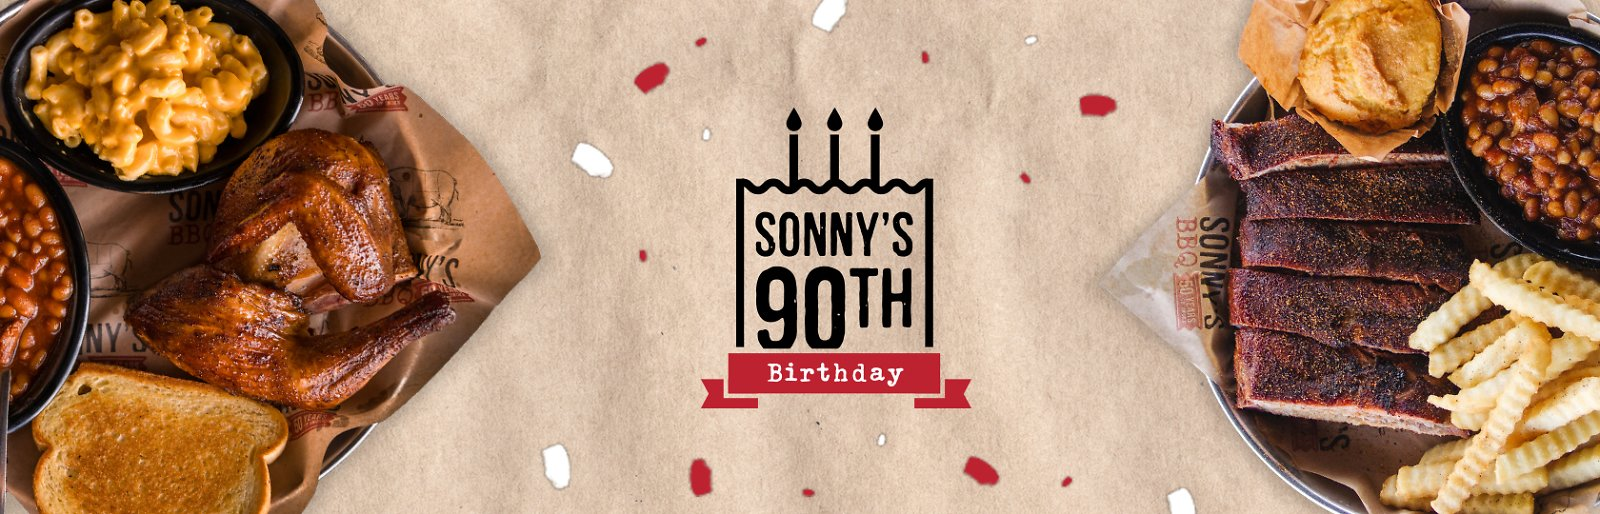 A Gift for You to Celebrate Sonny's 90th Birthday